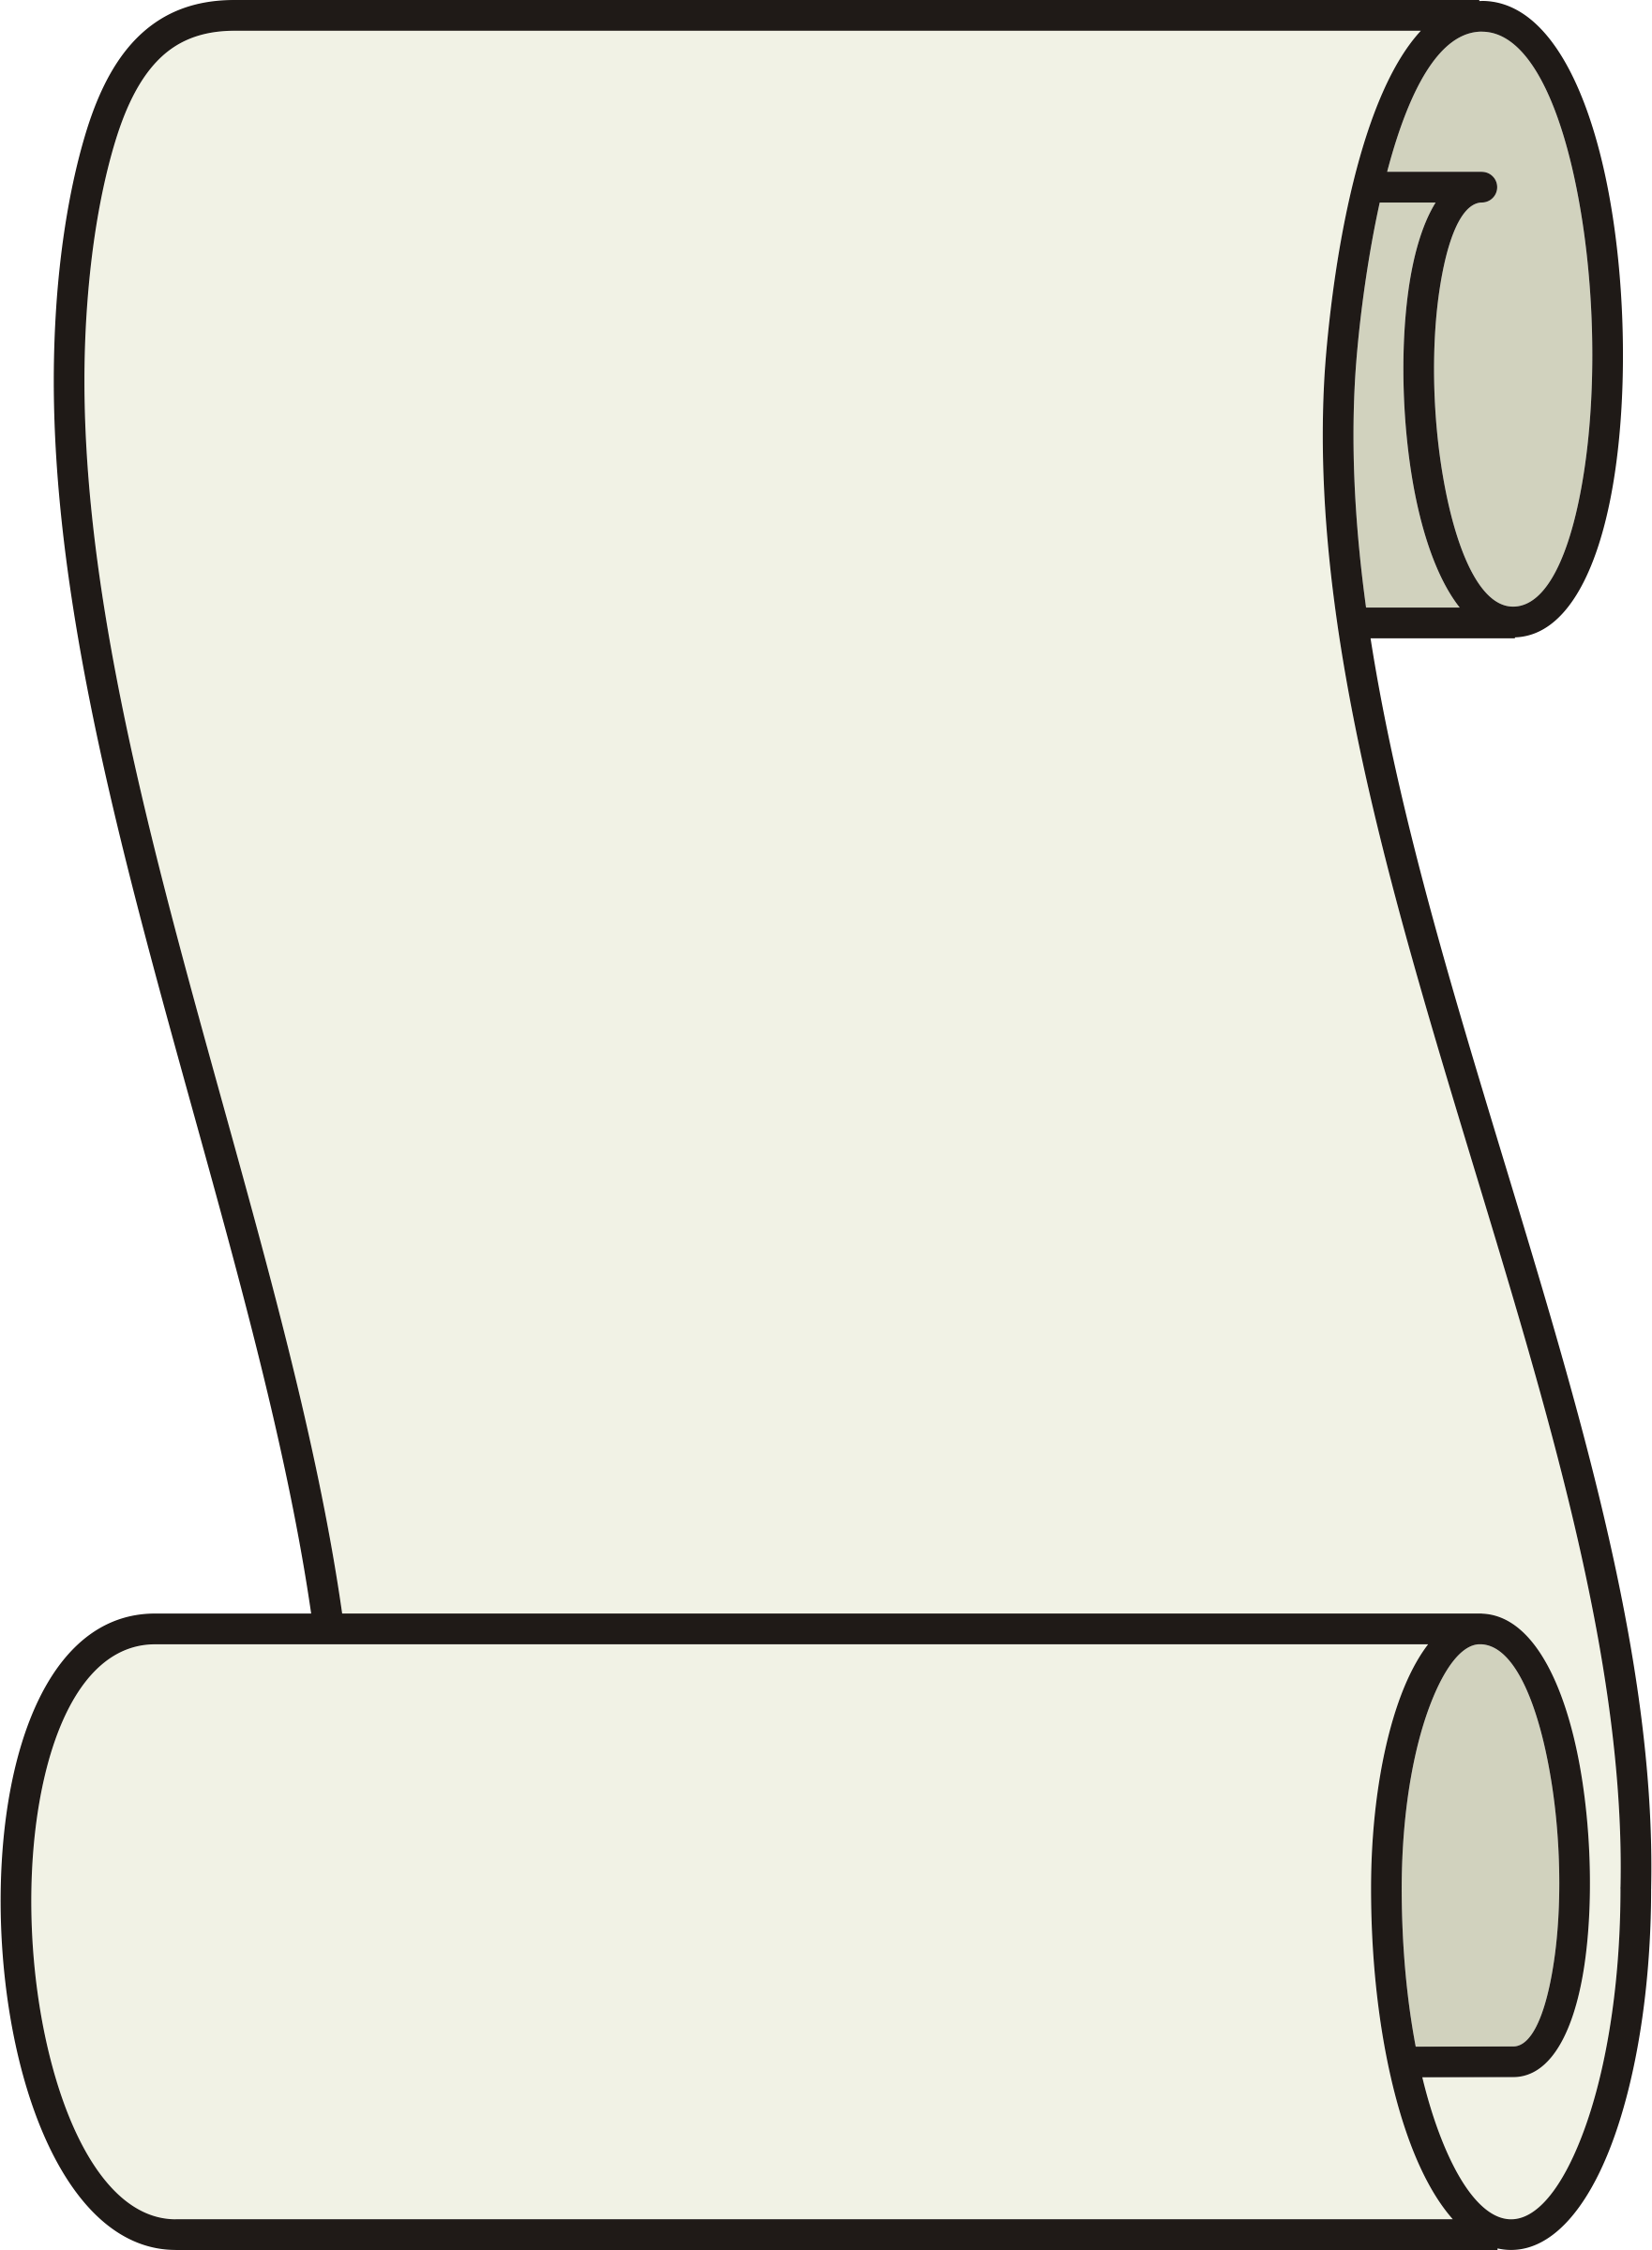 Scroll clipart parchment. Big image png